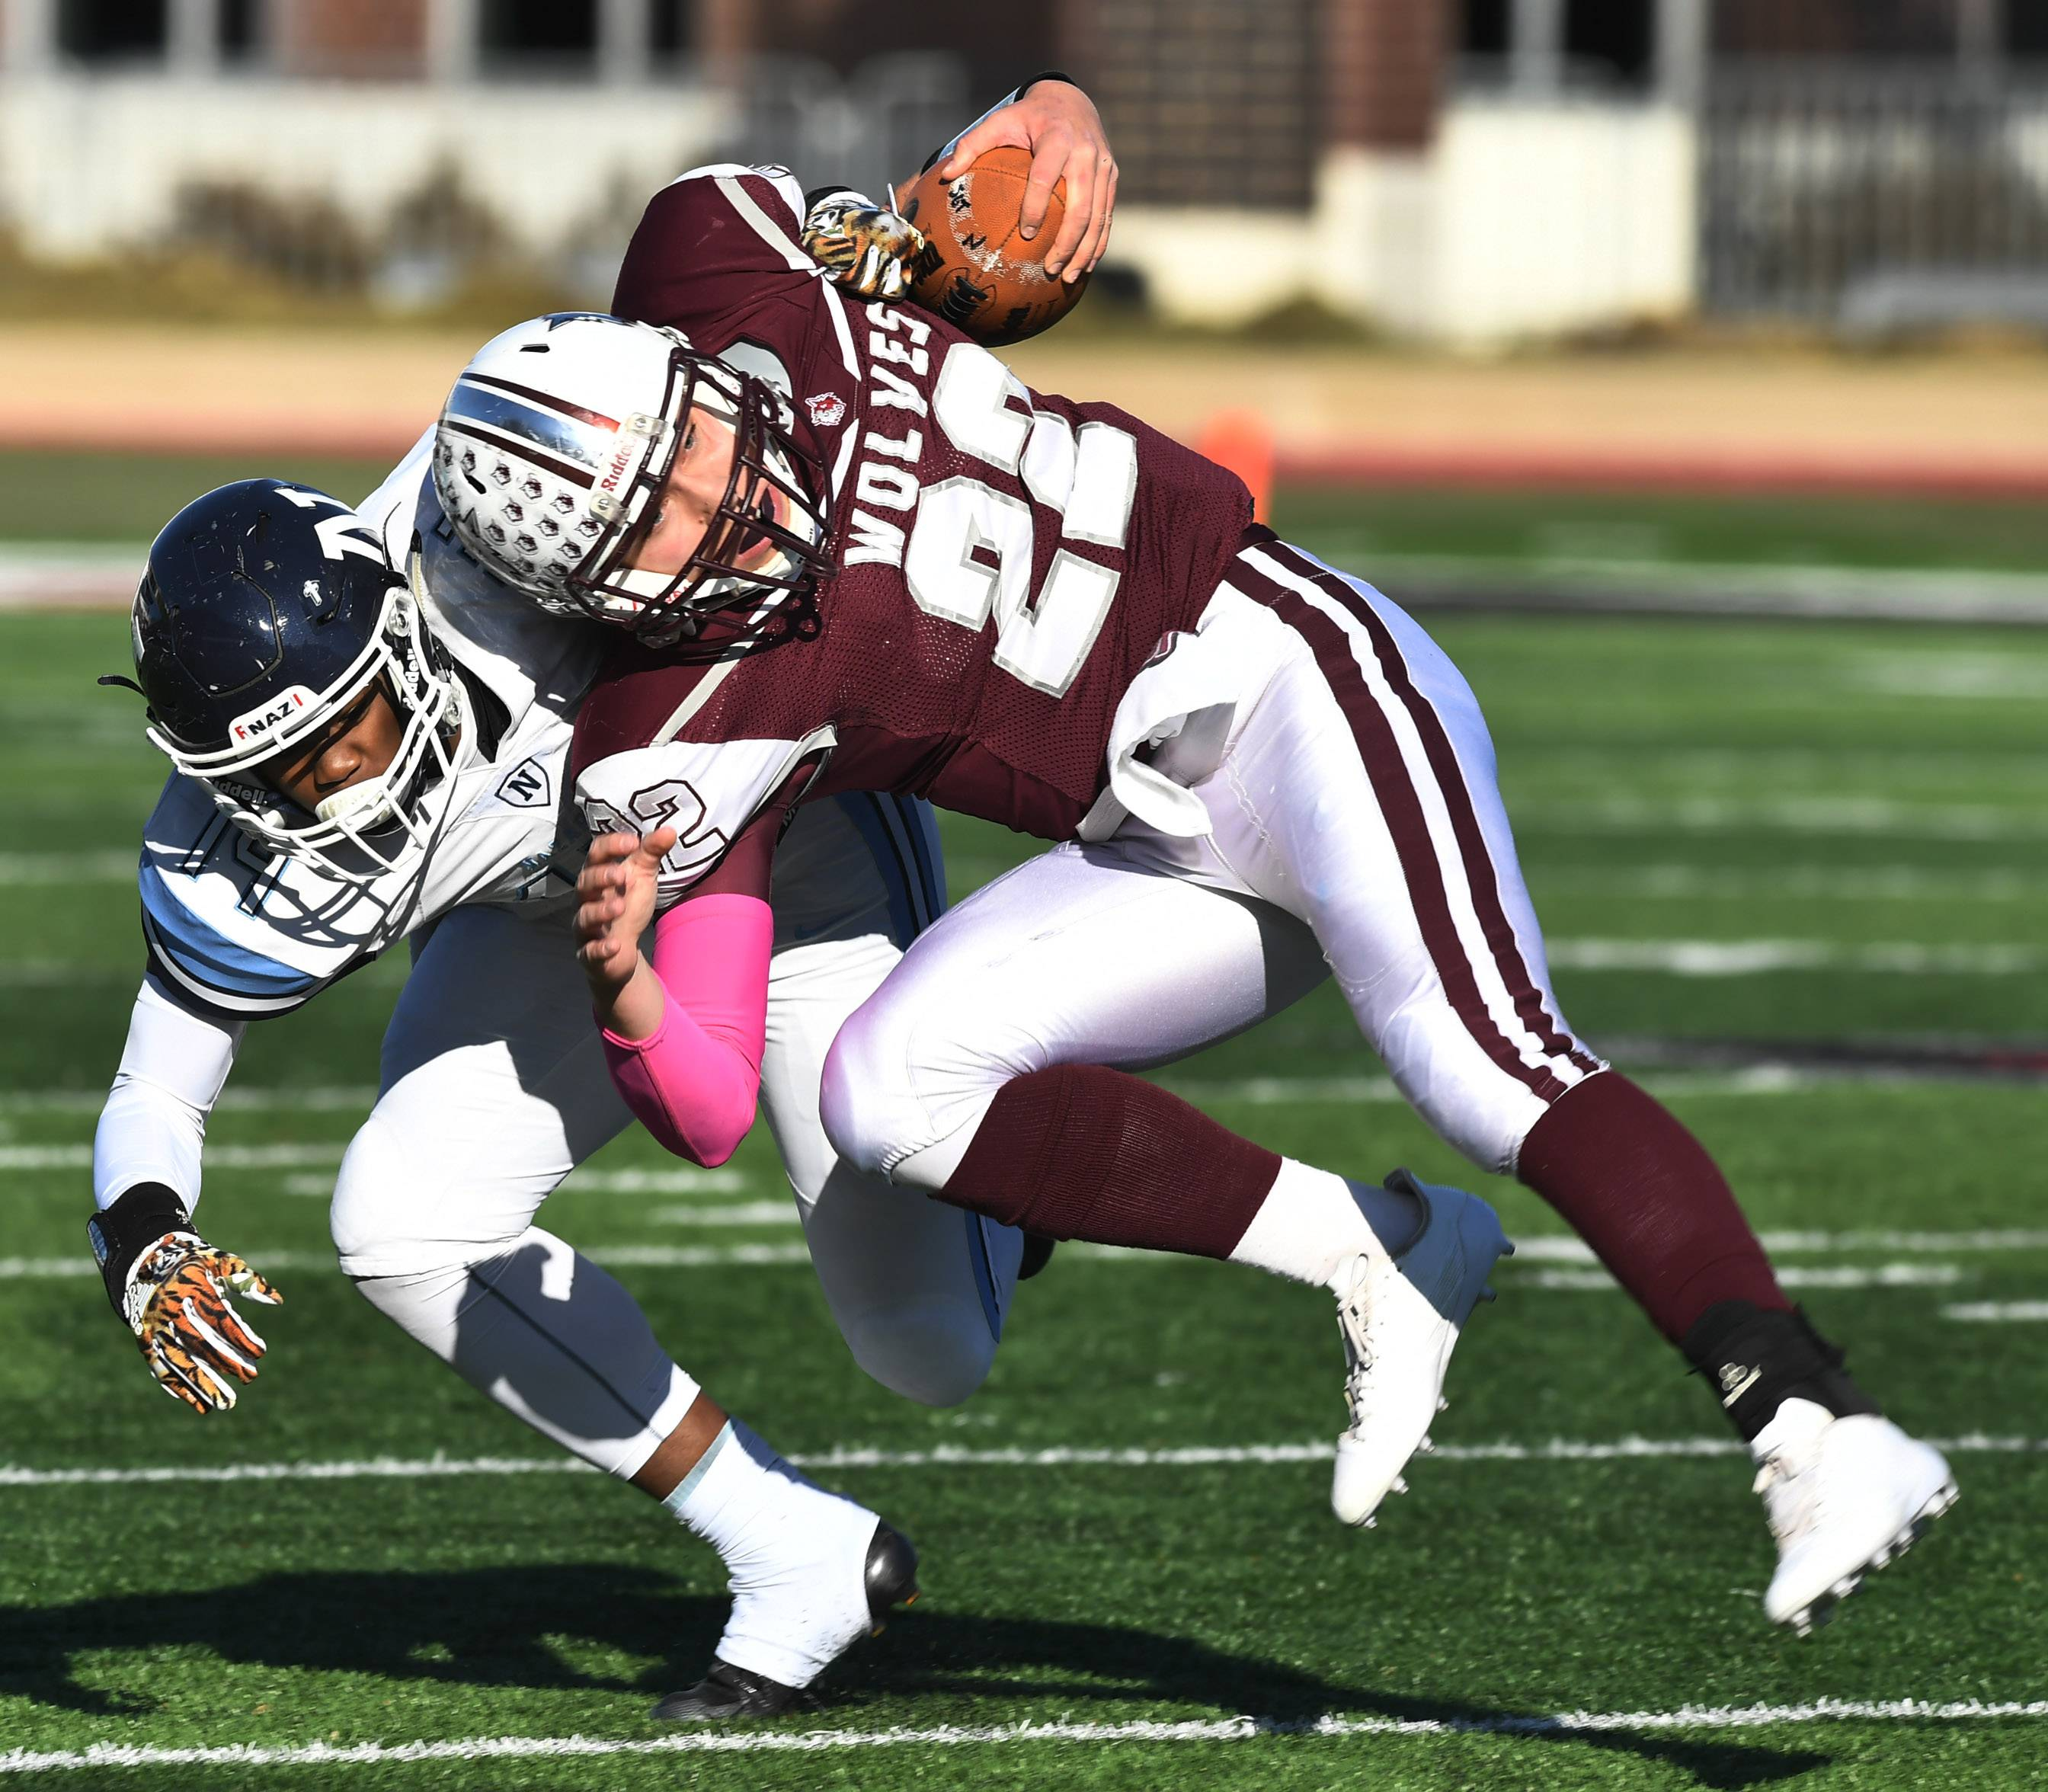 Nazareth's David Oglesby, left, tackles Prairie Ridge's Samson Evans during the Class 6A championship game at Huskie Stadium in DeKalb Saturday.